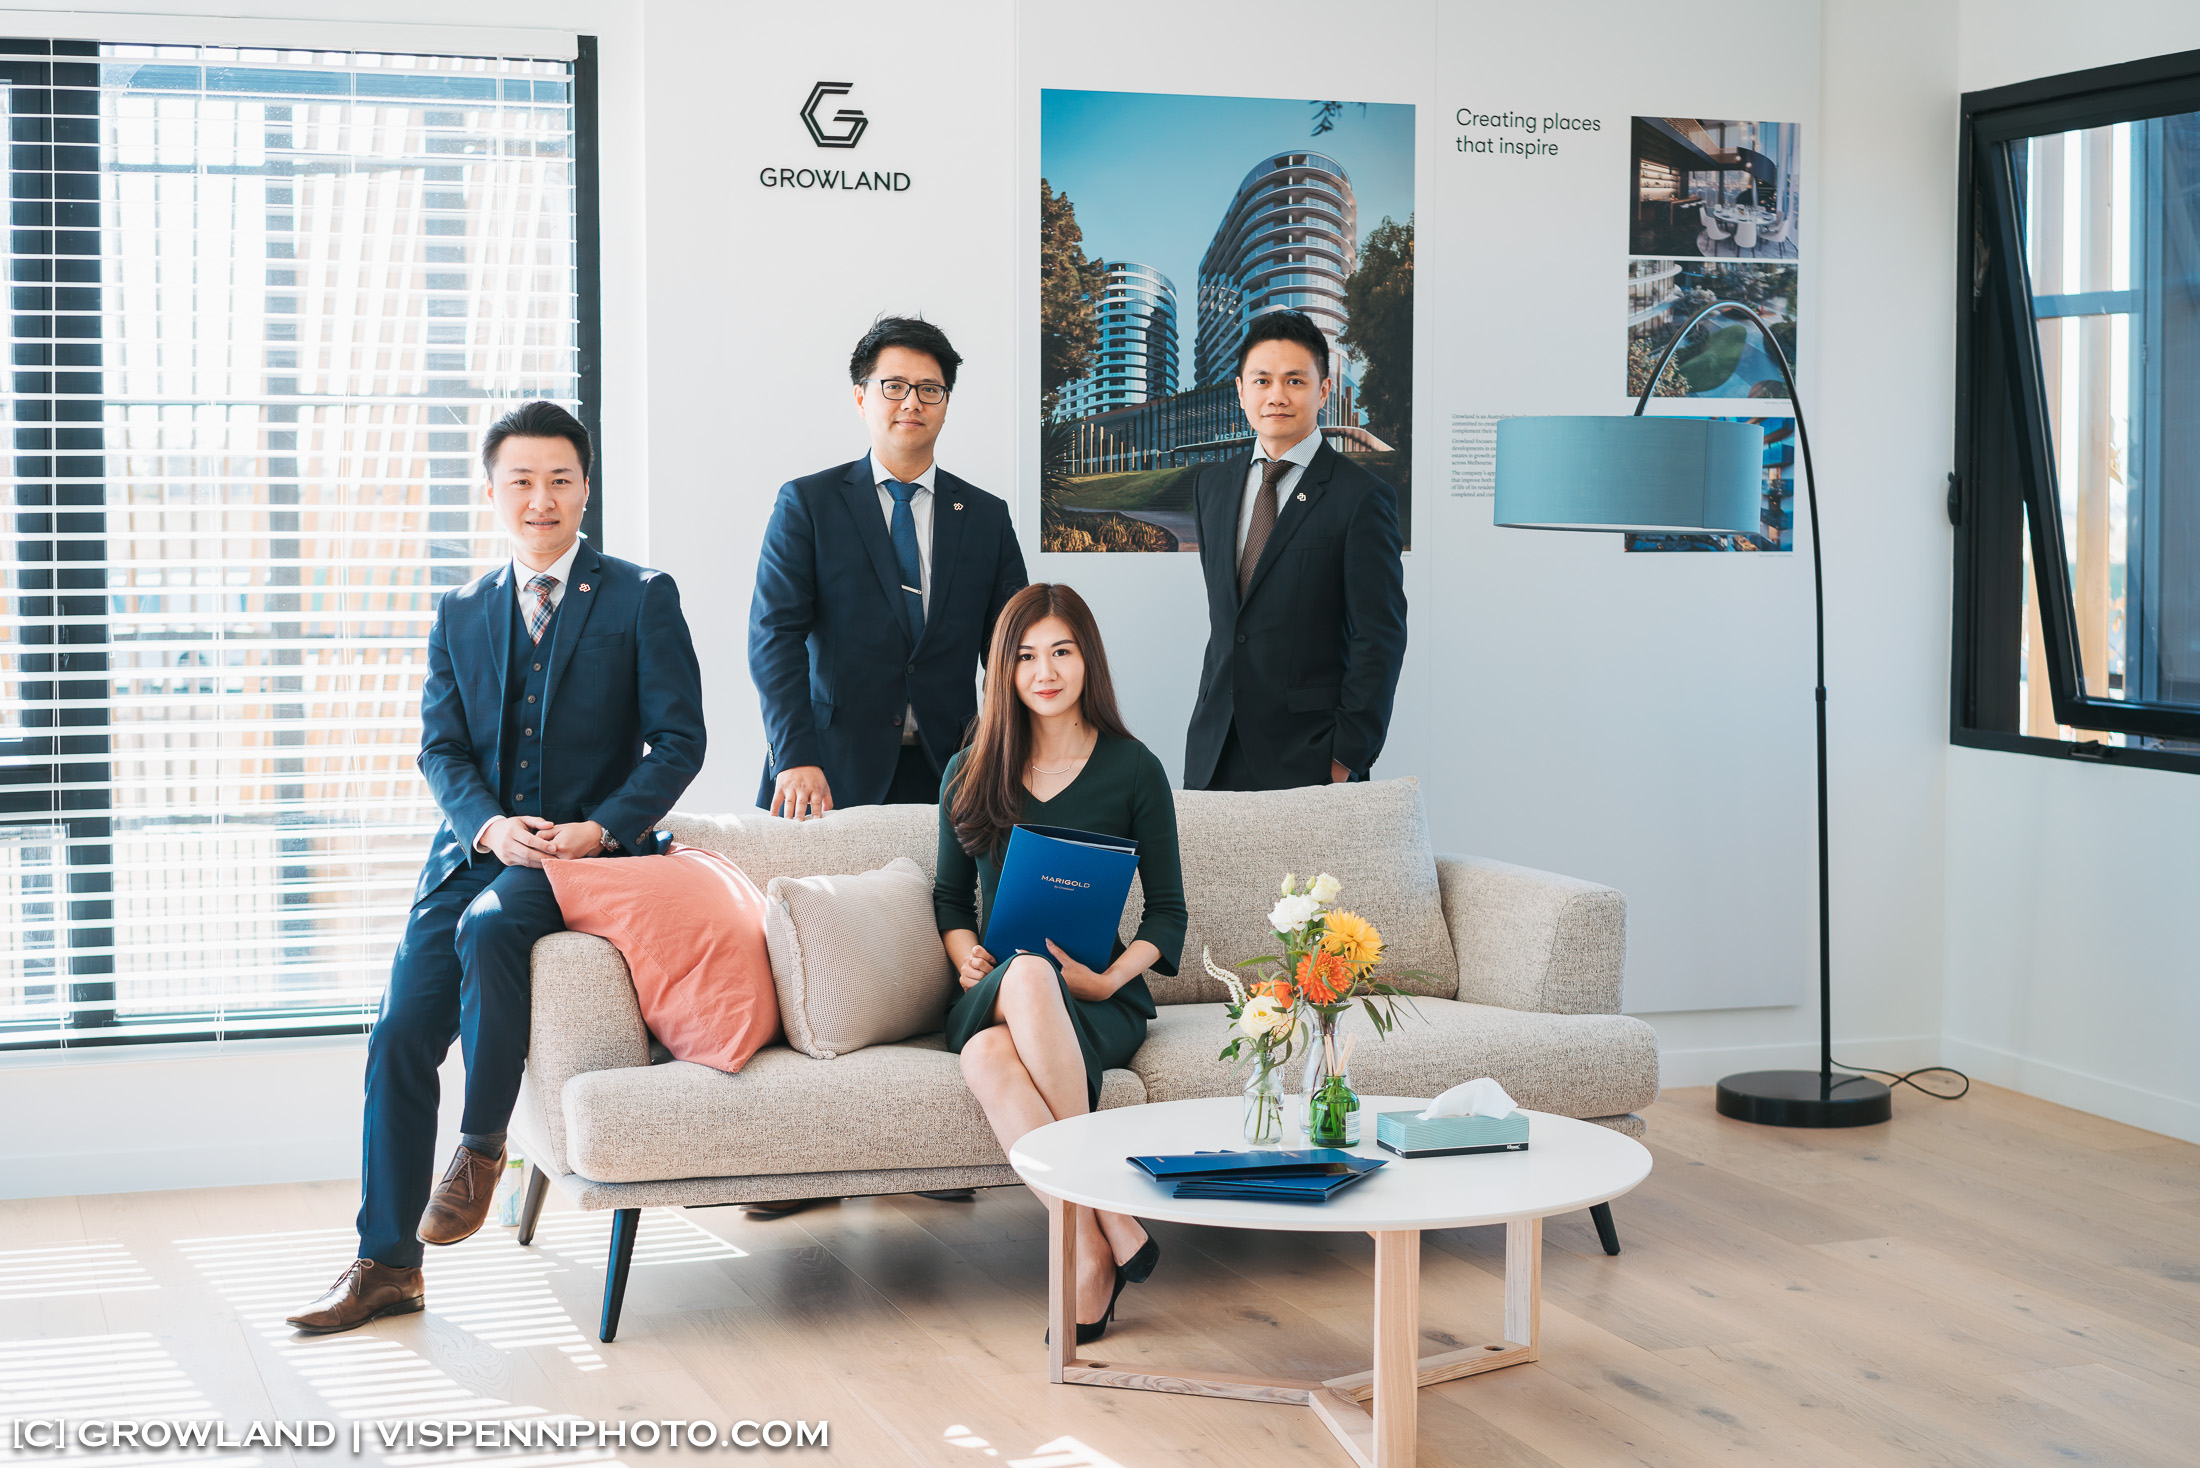 Headshot Melbourne Business Corporate Portraits VISPENN 墨尔本 商务 肖像工作照 团队 形象照 LinkedIn 头像 VISPENN 0864 Edit